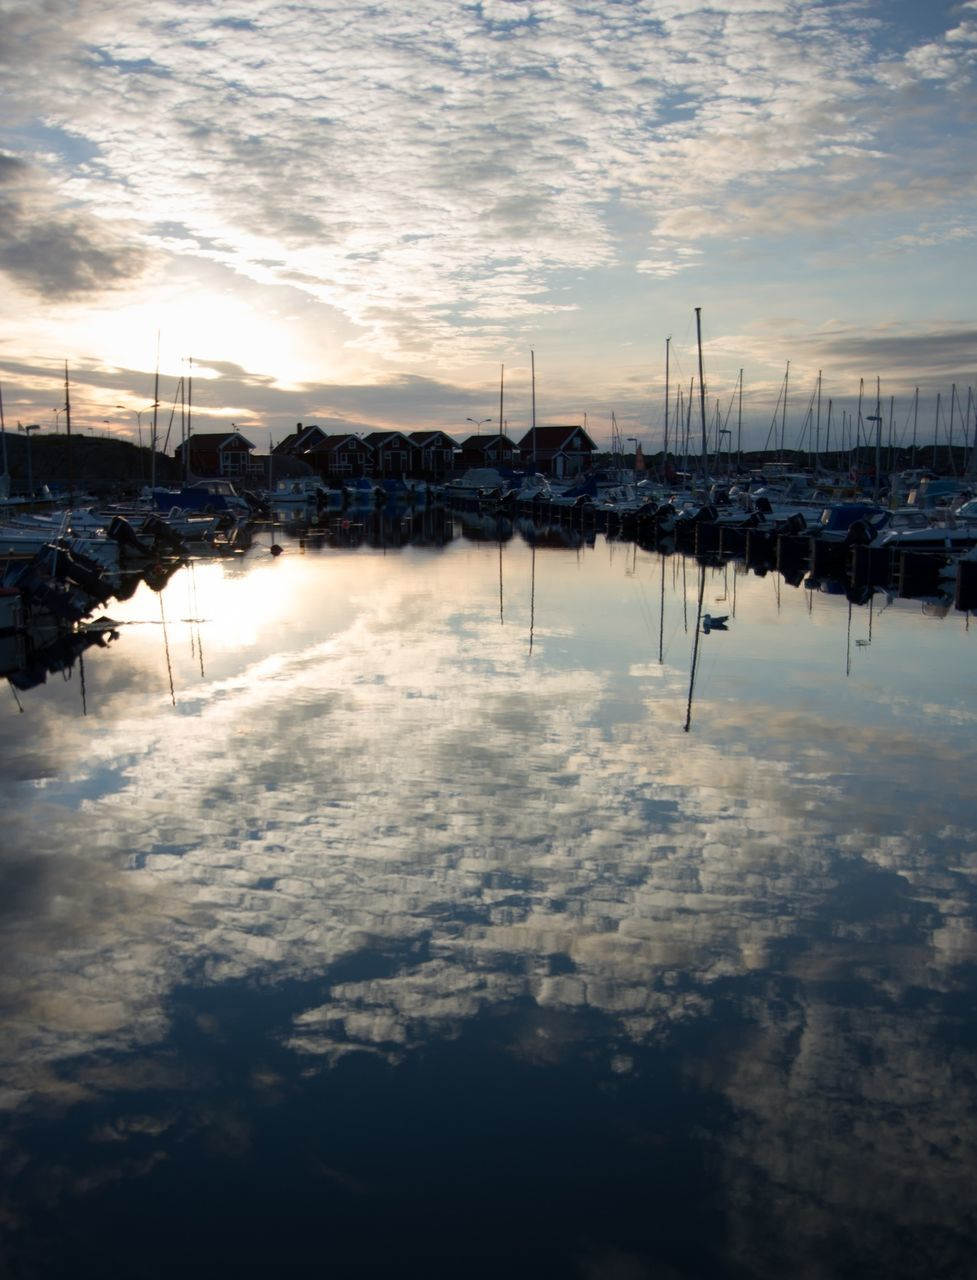 Boats Moored In Lake With Cloudy Sky Reflection